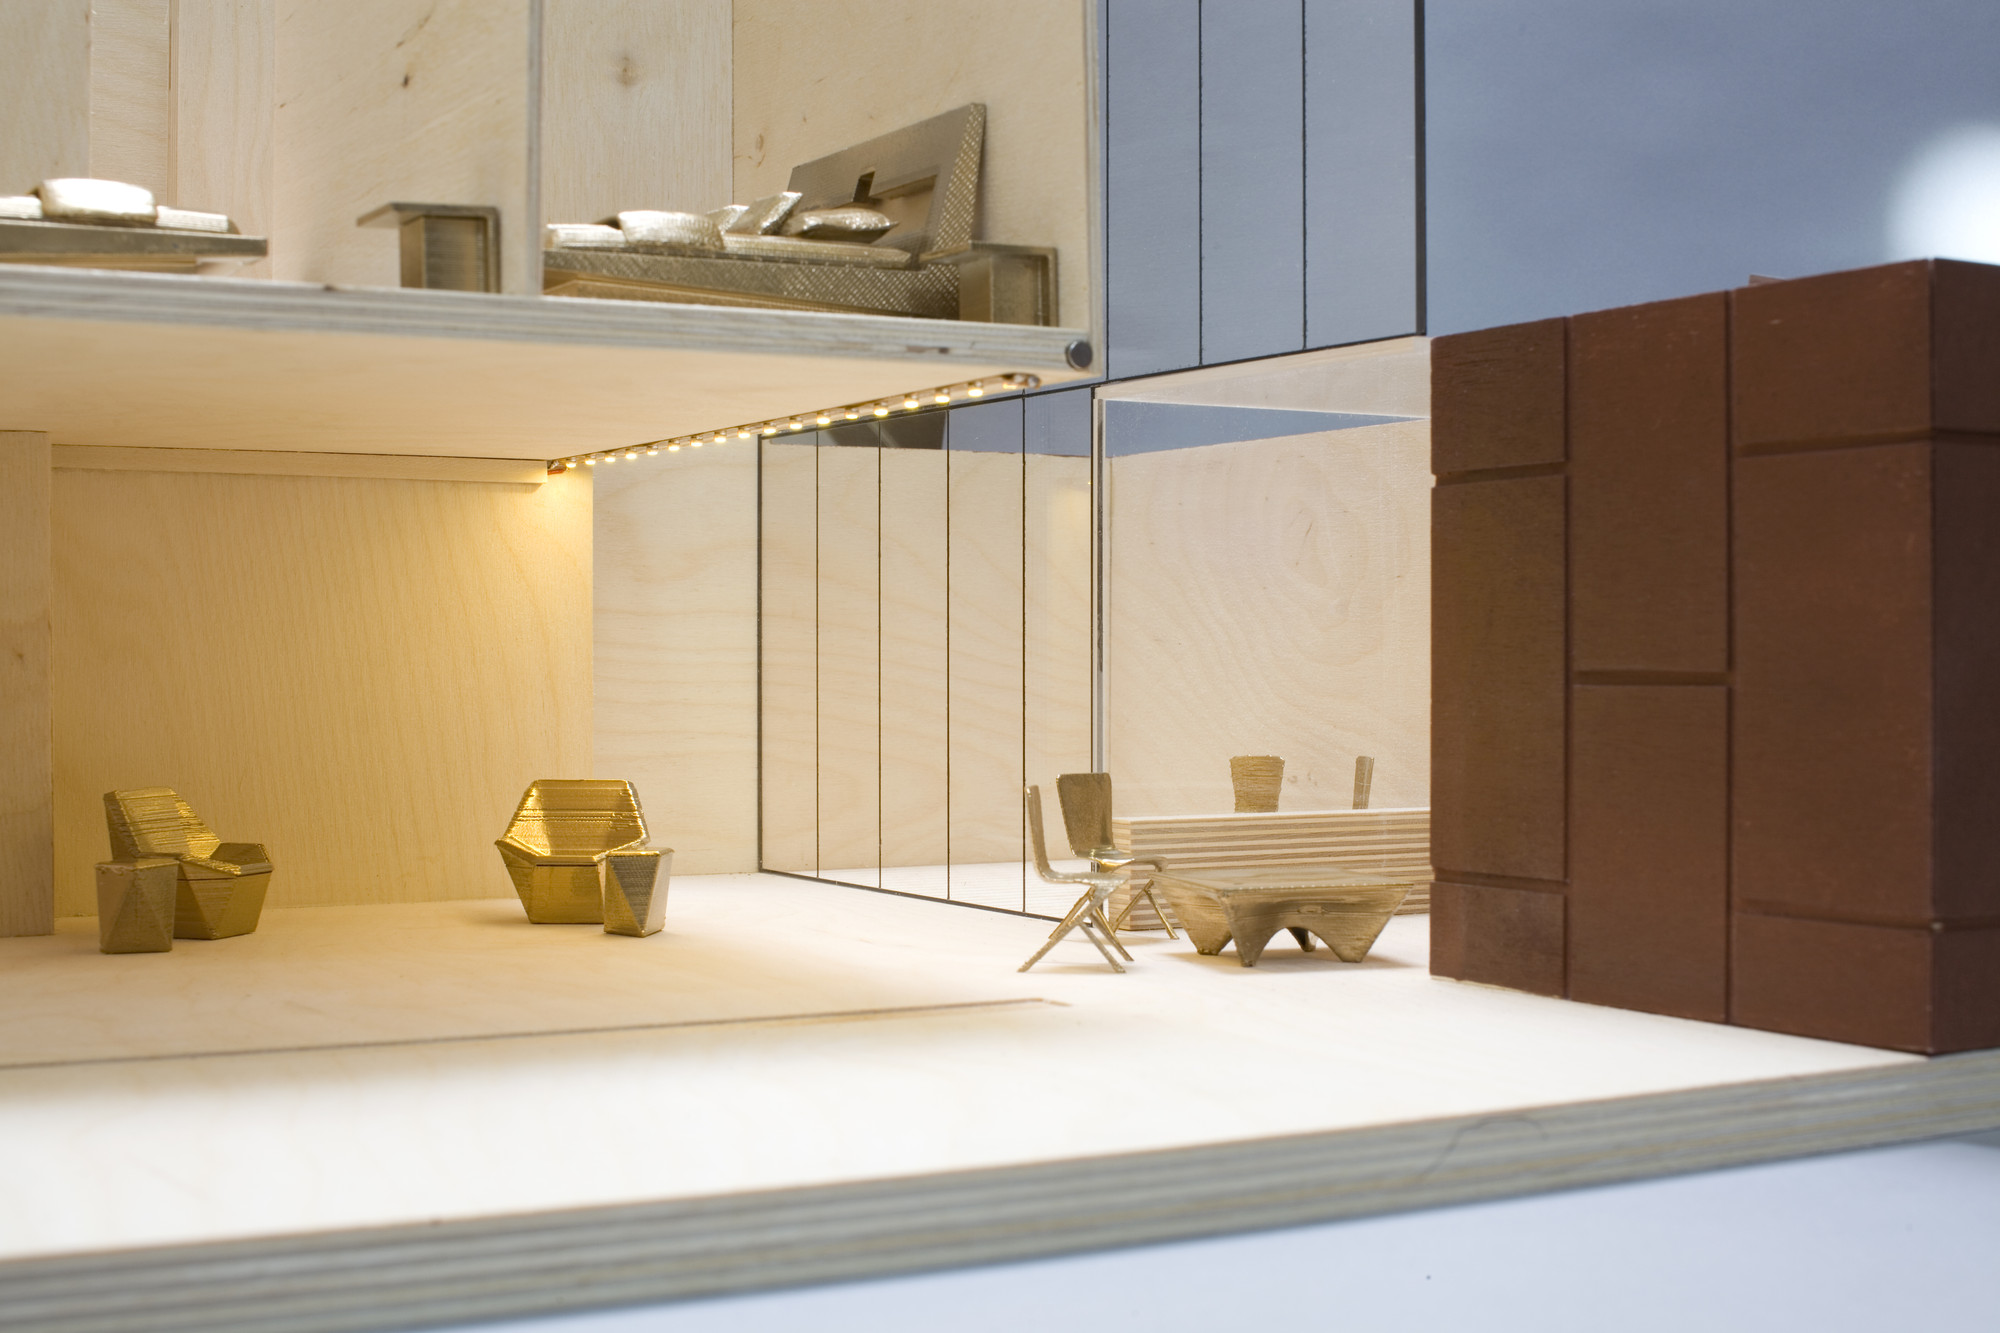 Dolls' House Designs for KIDS Unveiled, Adjaye Associates. Image Courtesy of A Dolls' House